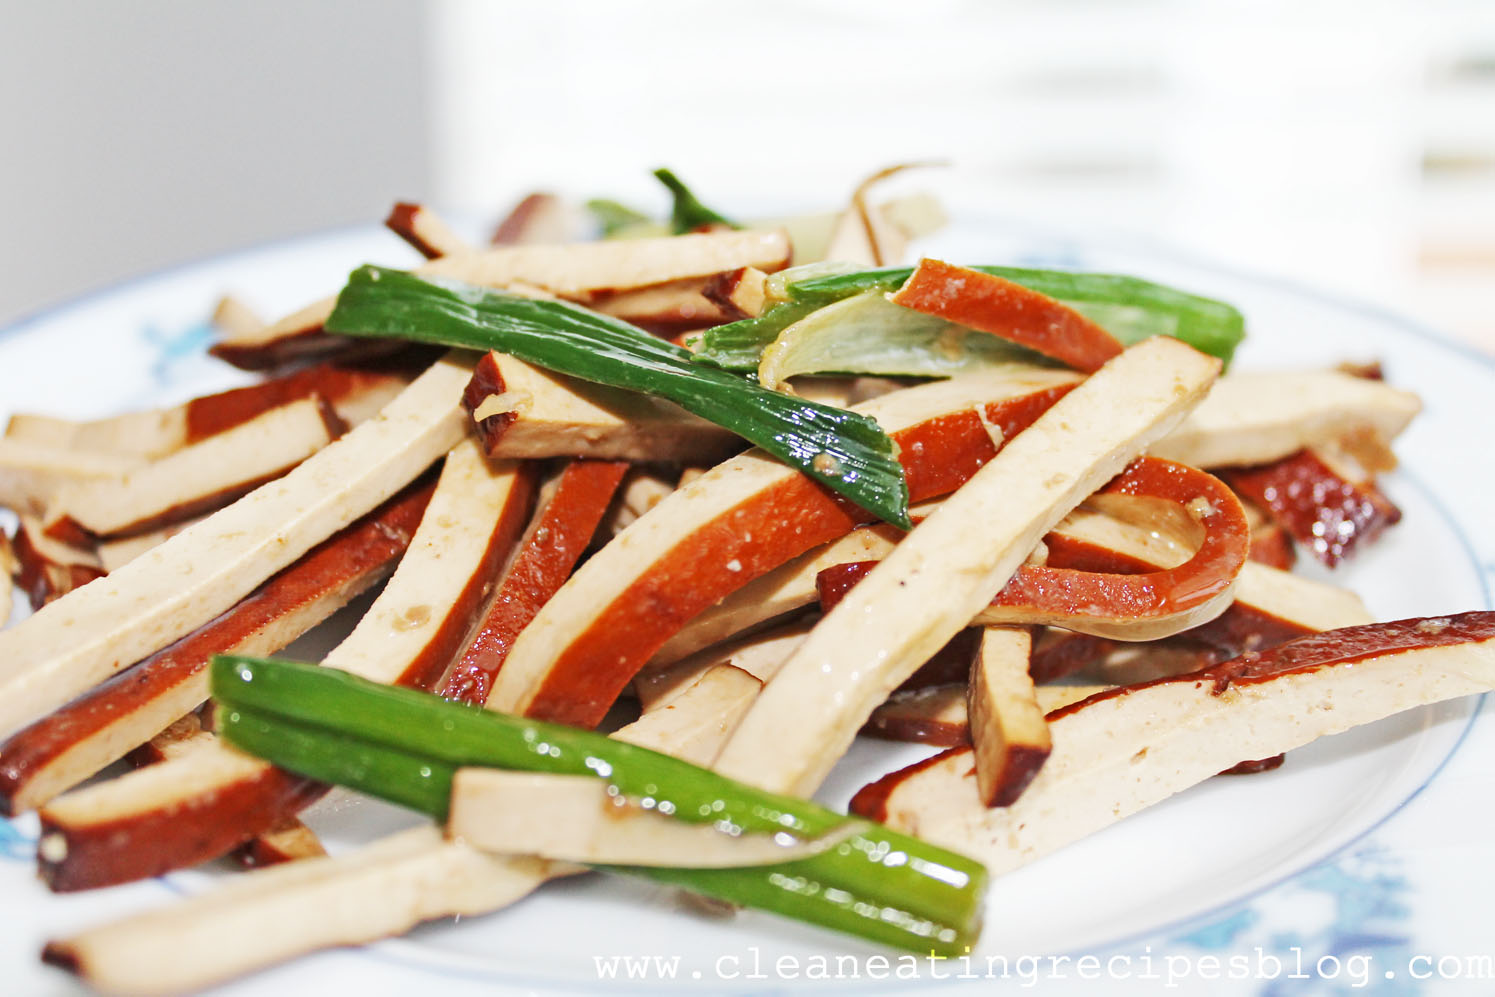 Clean Eating Recipe – Stir Fry Green Onion and Dried Tofu Slices